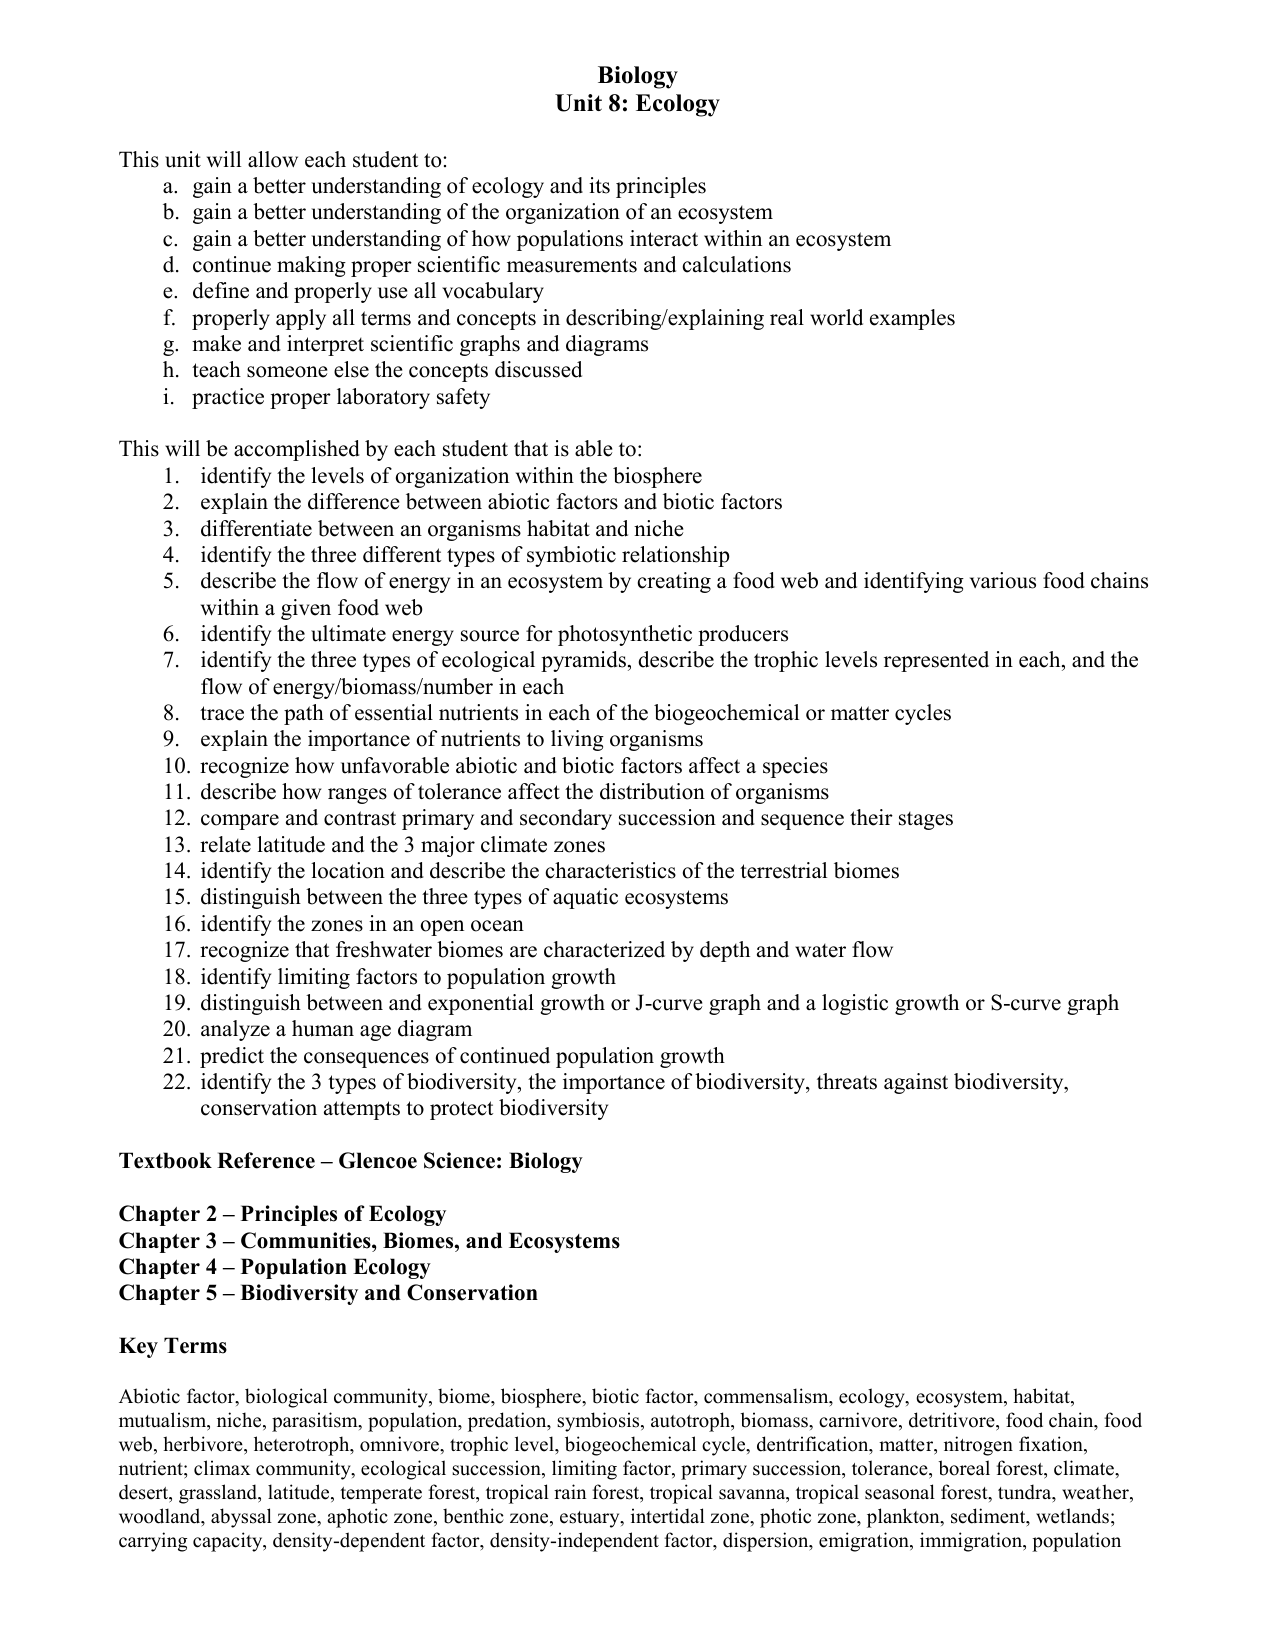 Chapter 3 Communities Biomes And Ecosystems Worksheet ...